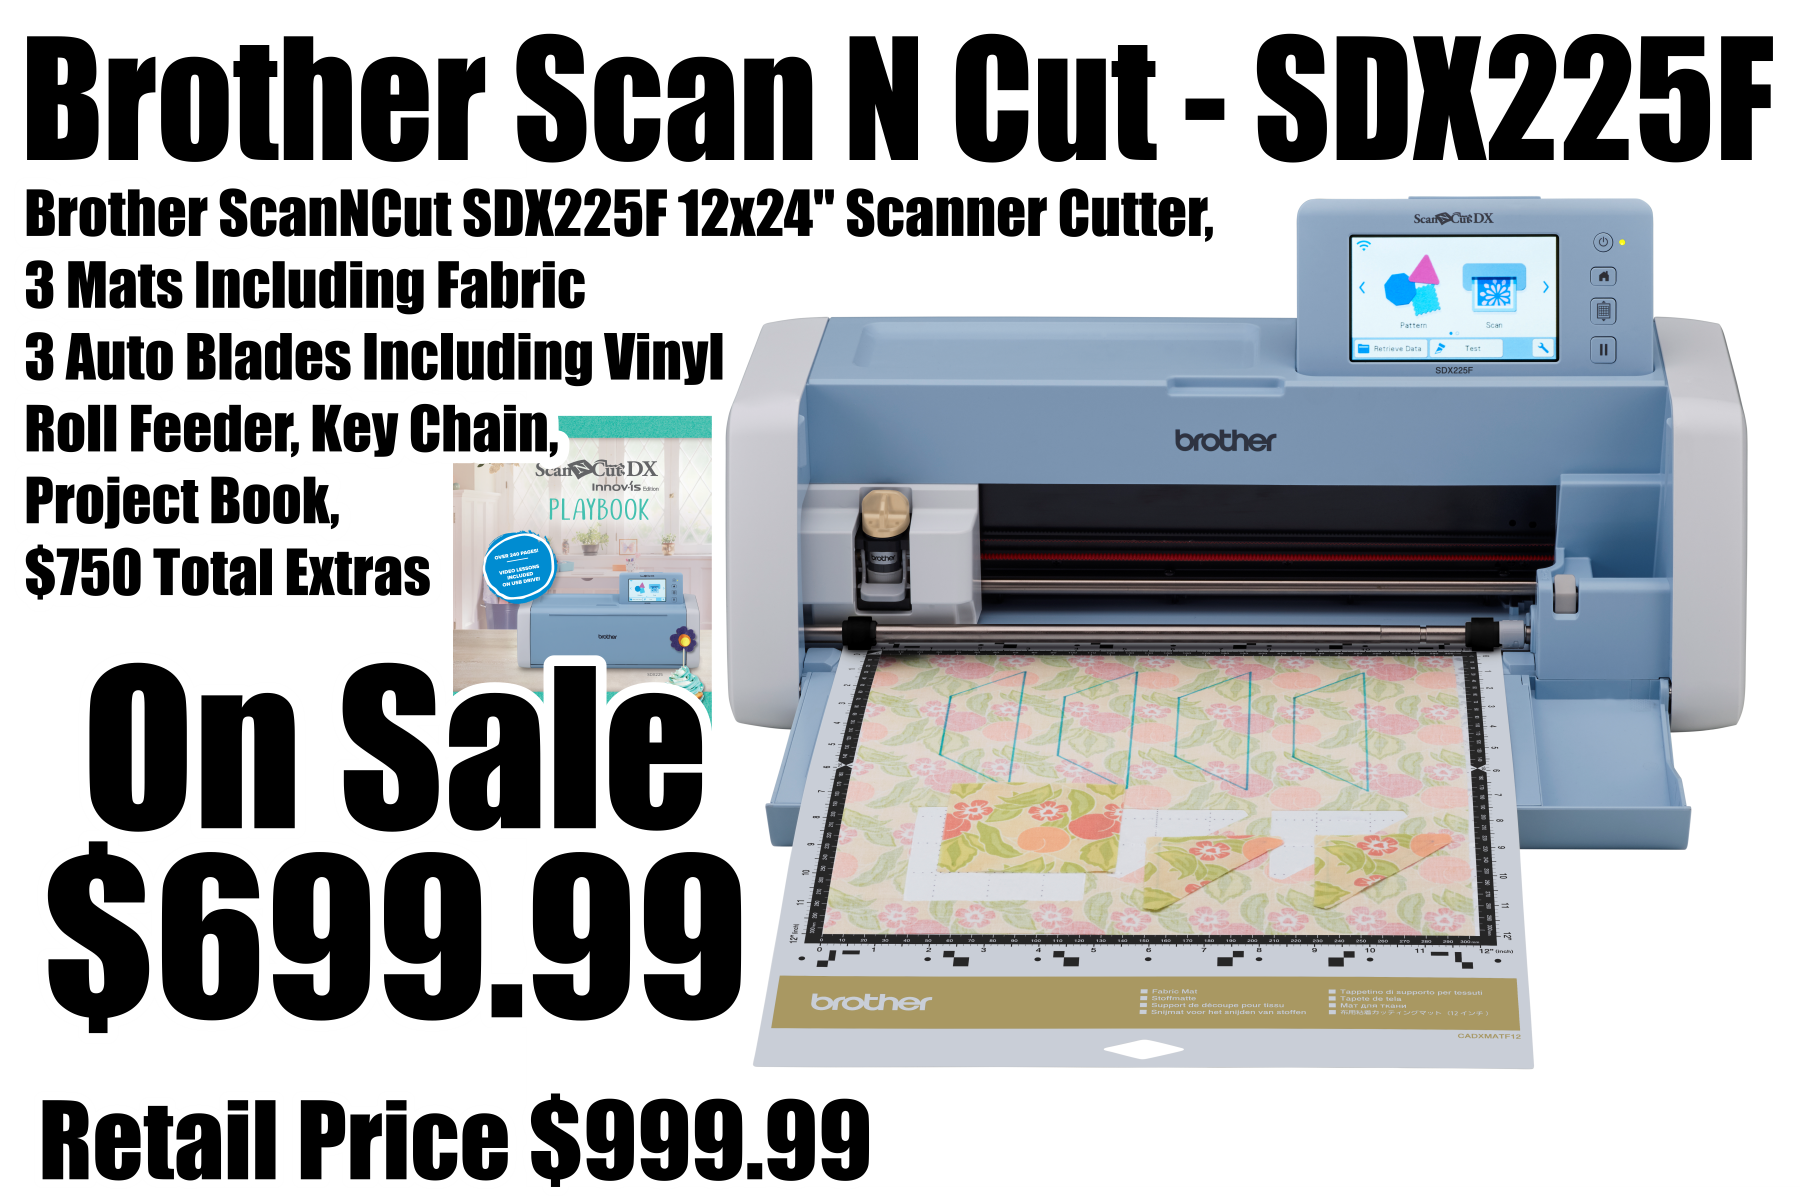 Brother Special Fabric Edition Scan N Cut SDX225F - SDX225F